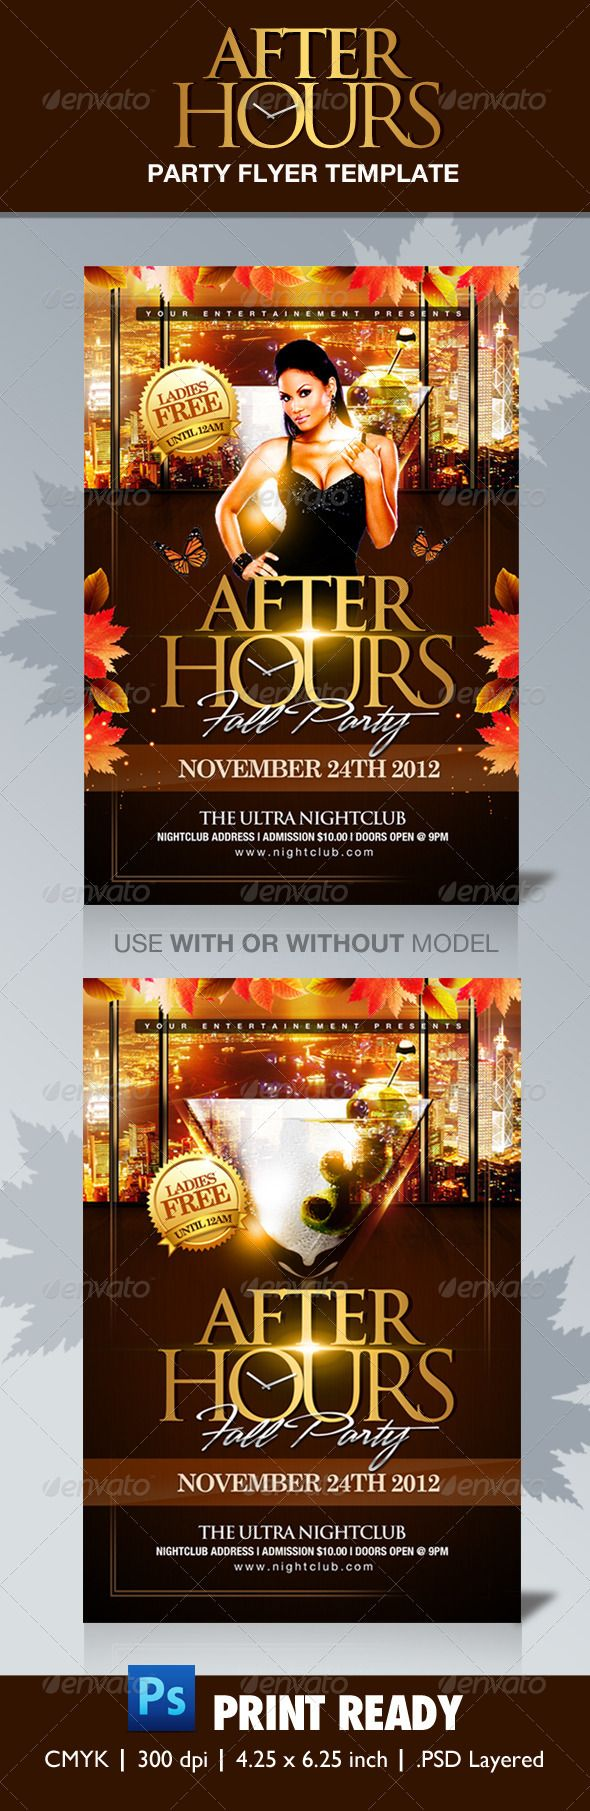 best images about print templates fonts flyer after hours party flyer template graphicriver use this design for any thanksgiving party